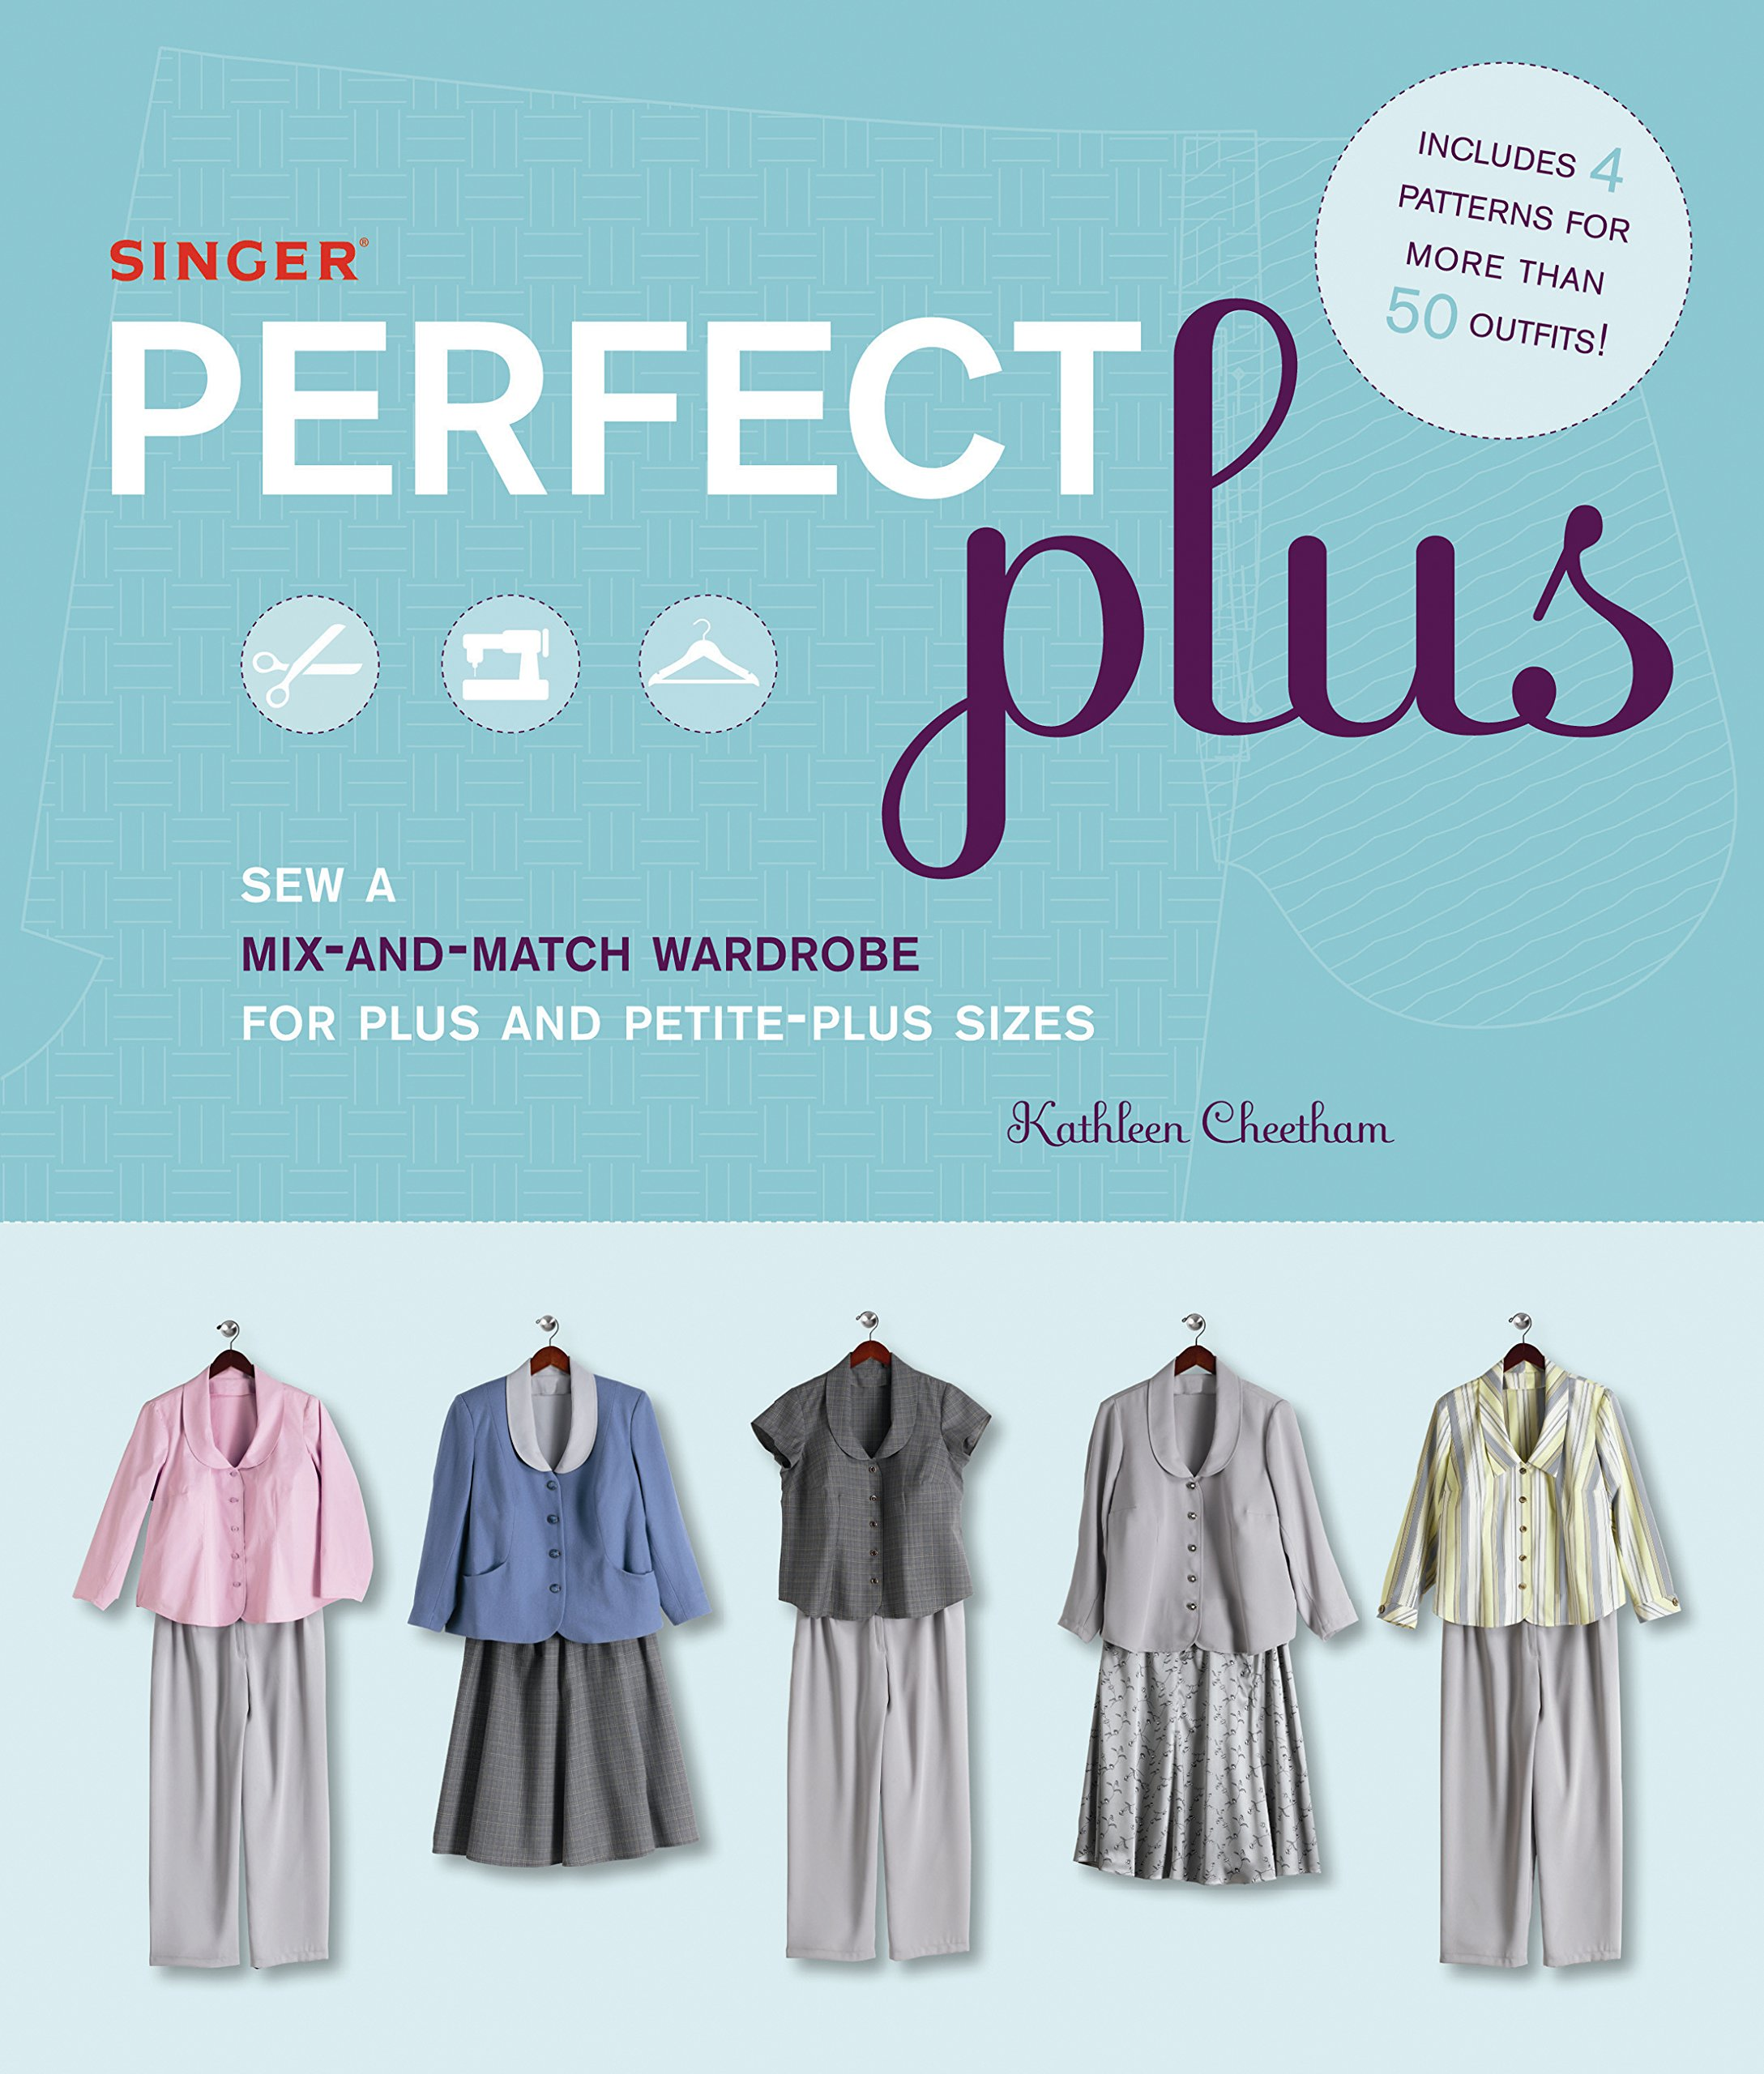 086e2cbb8275 Singer Perfect Plus  Sew a Mix-and-Match Wardrobe for Plus and ...